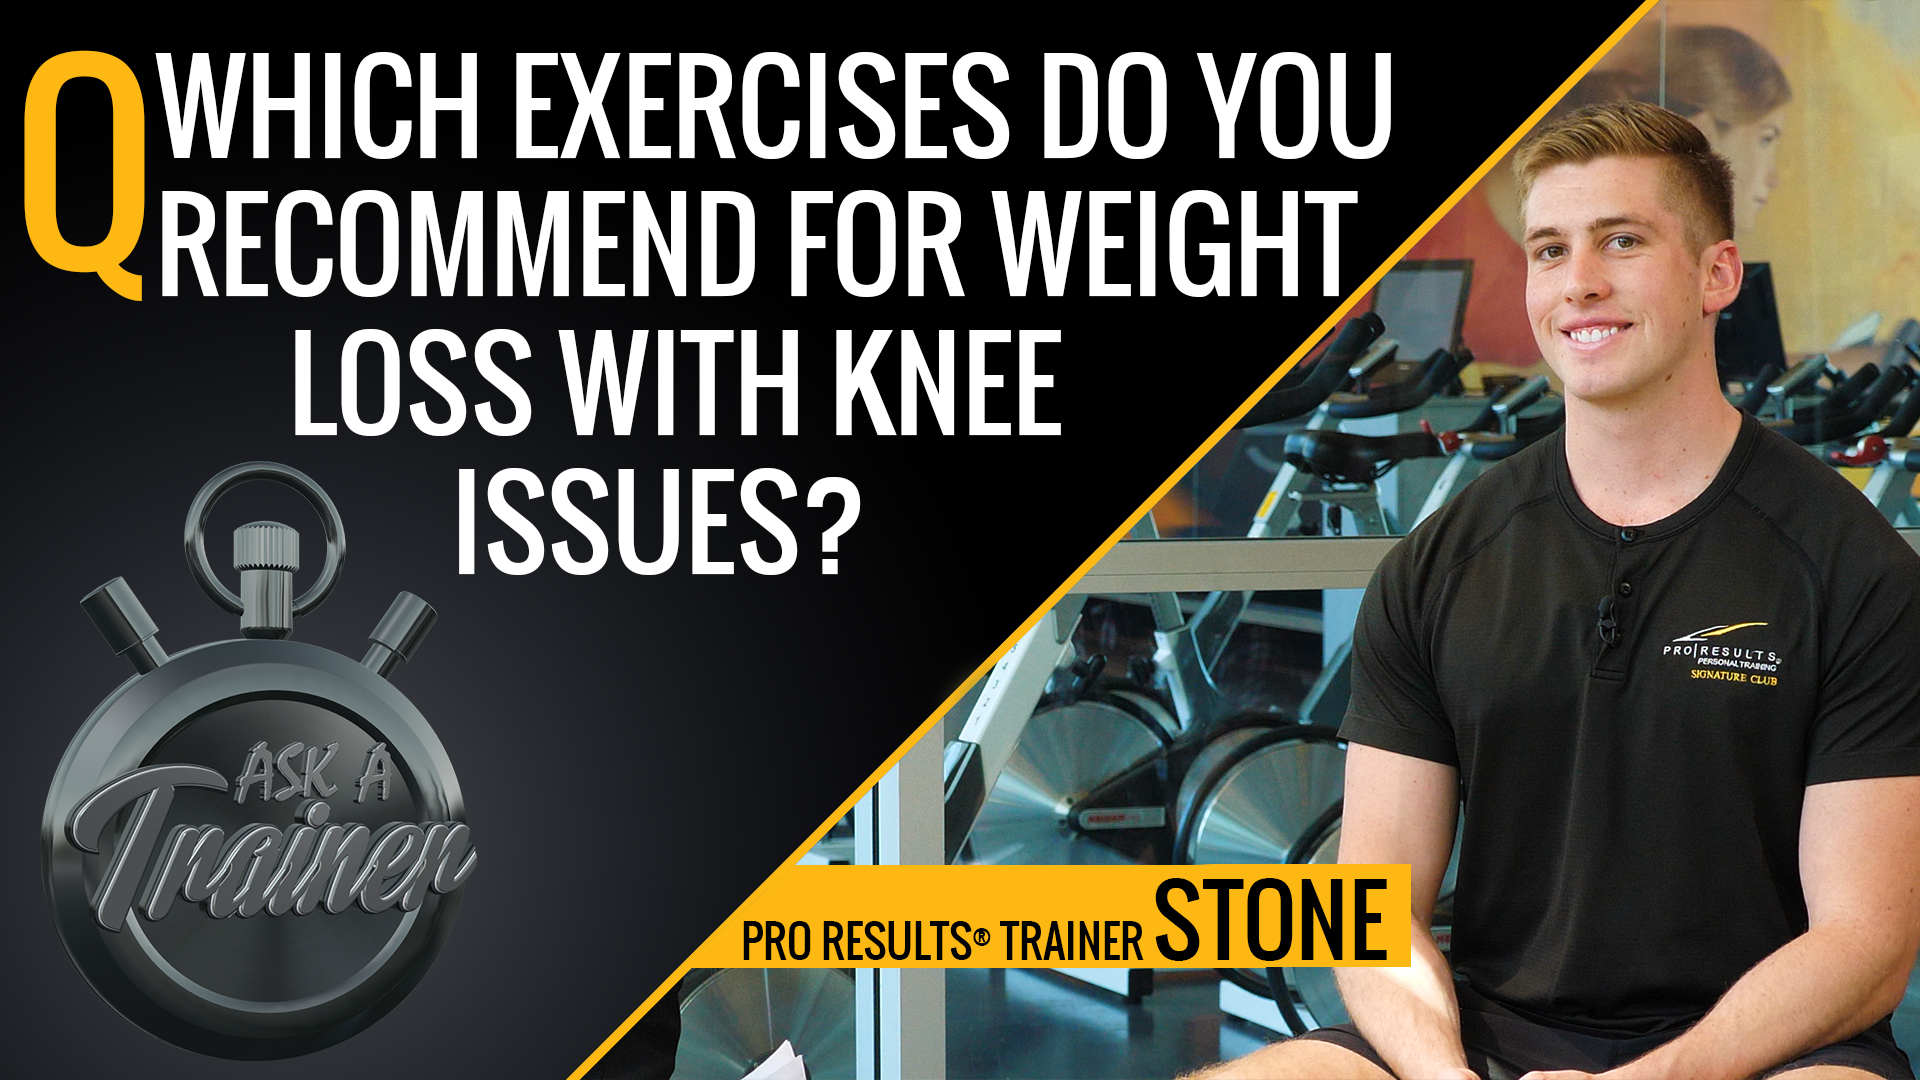 AAT: Ep. 29 – What Exercises Do You Recommend for Weight Loss with Knee Issues?